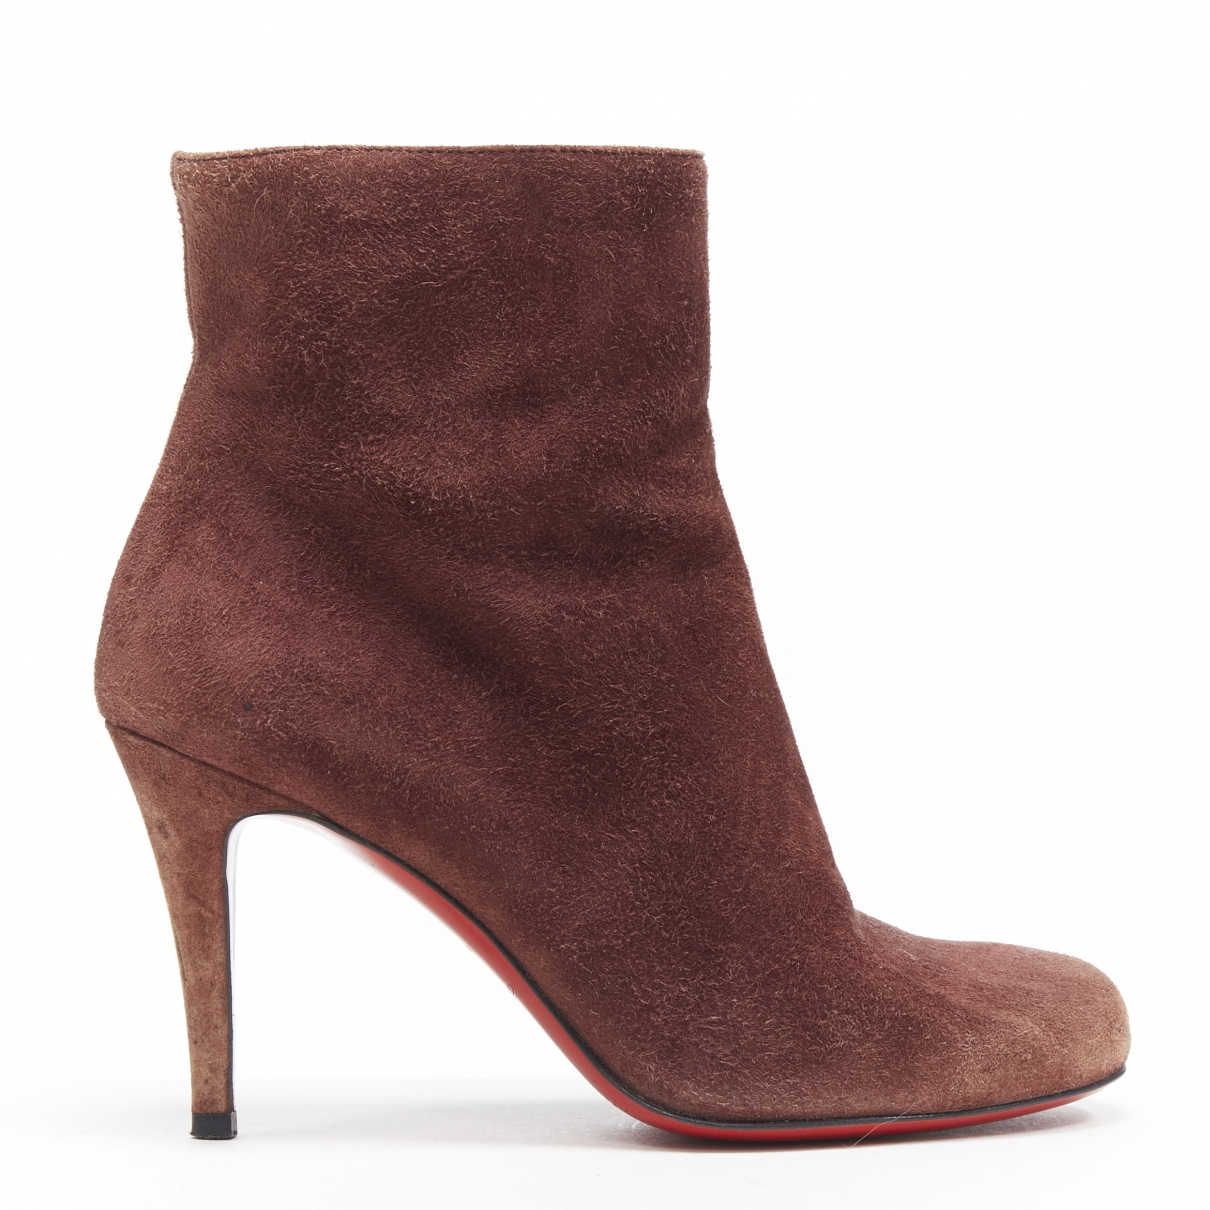 Christian Louboutin \N Brown Suede Ankle boots for Women 36 EU